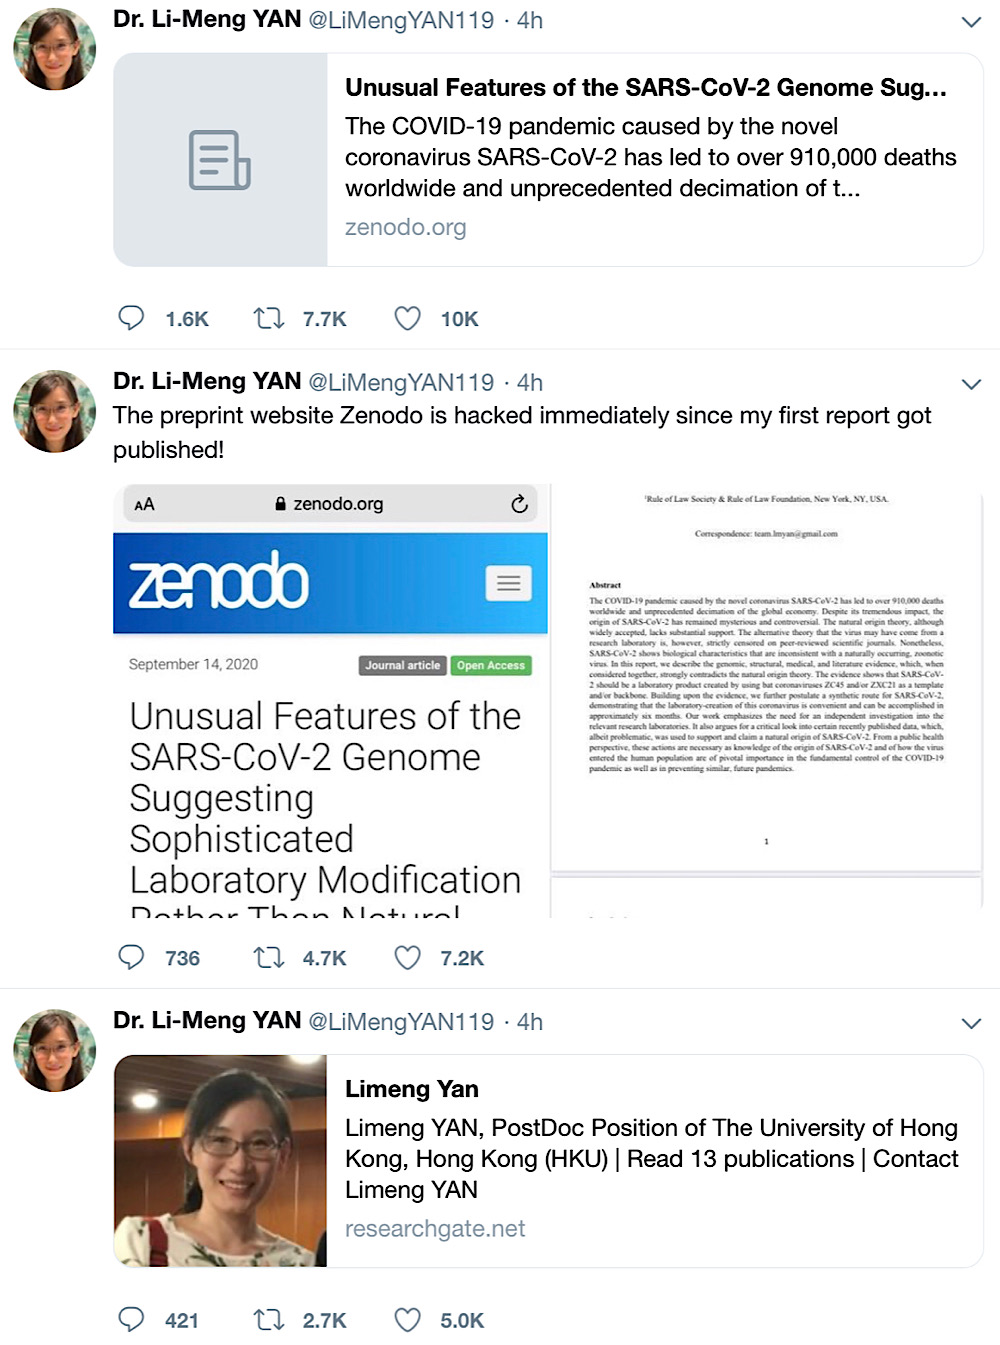 Dr. Li-Meng Yan tweeted out information about her paper and research before she was suspended (Archive.today - Twitter - @LiMengYAN119)